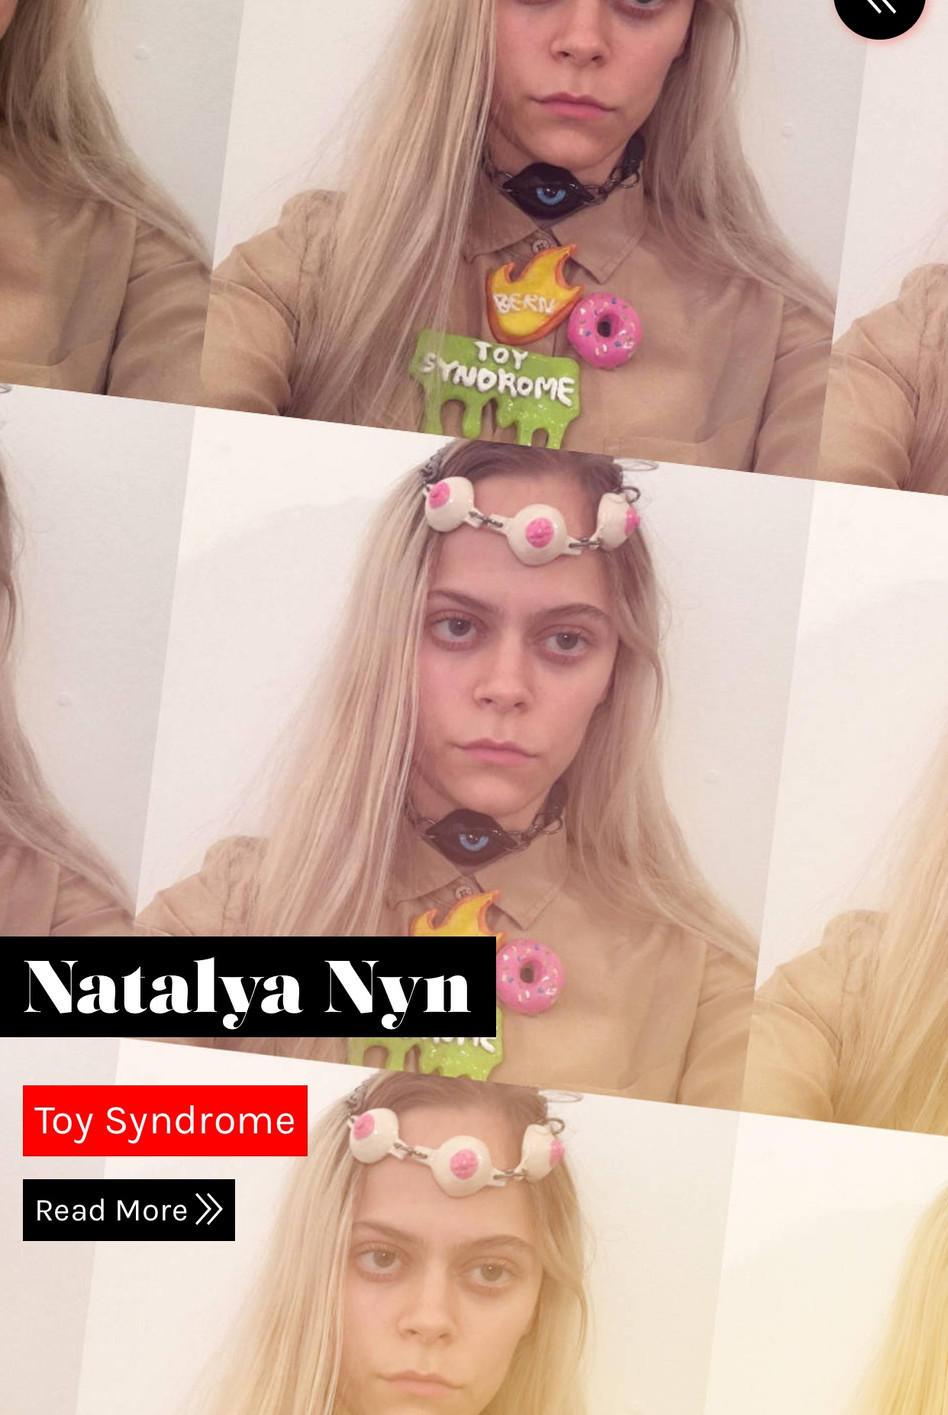 Natalya featured in 'Selfie' editorialfor Galore Magazine wearing Toy Syndrome brooches and necklace